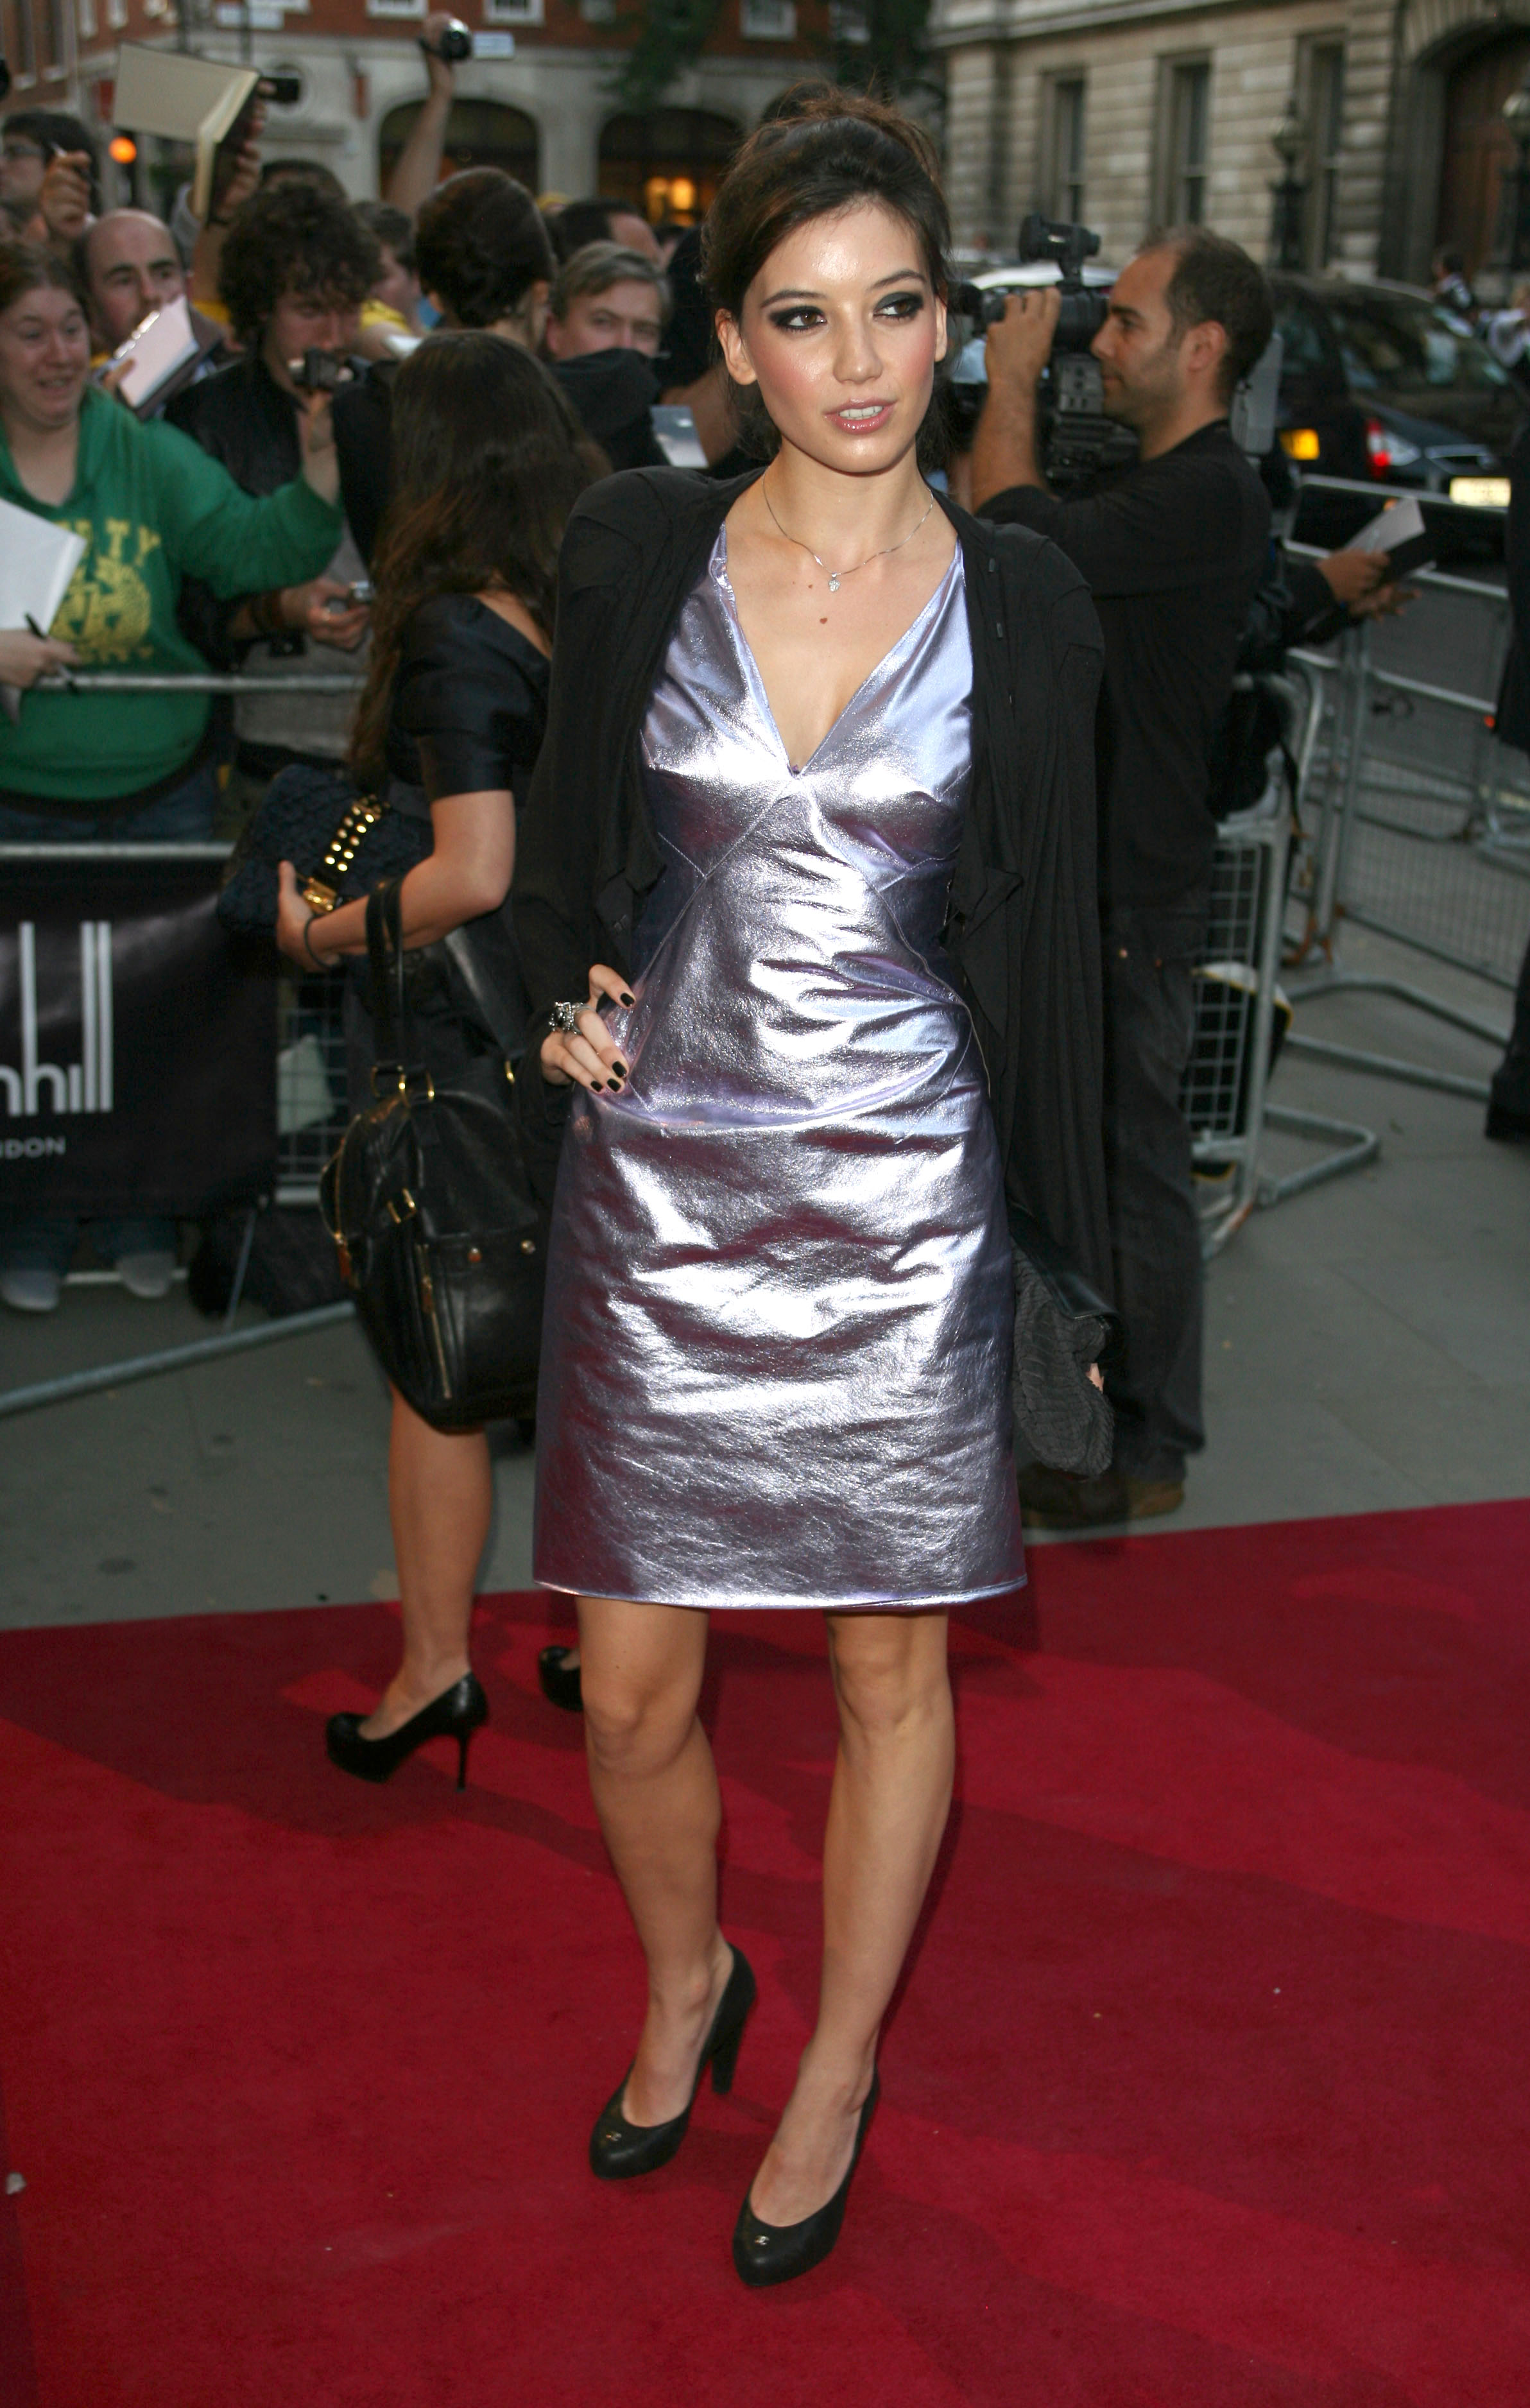 20145_Daisy_Lowe_-_GQ_Men_Of_The_Year_Awards_8th_Sept_2009_787_122_206lo.jpg